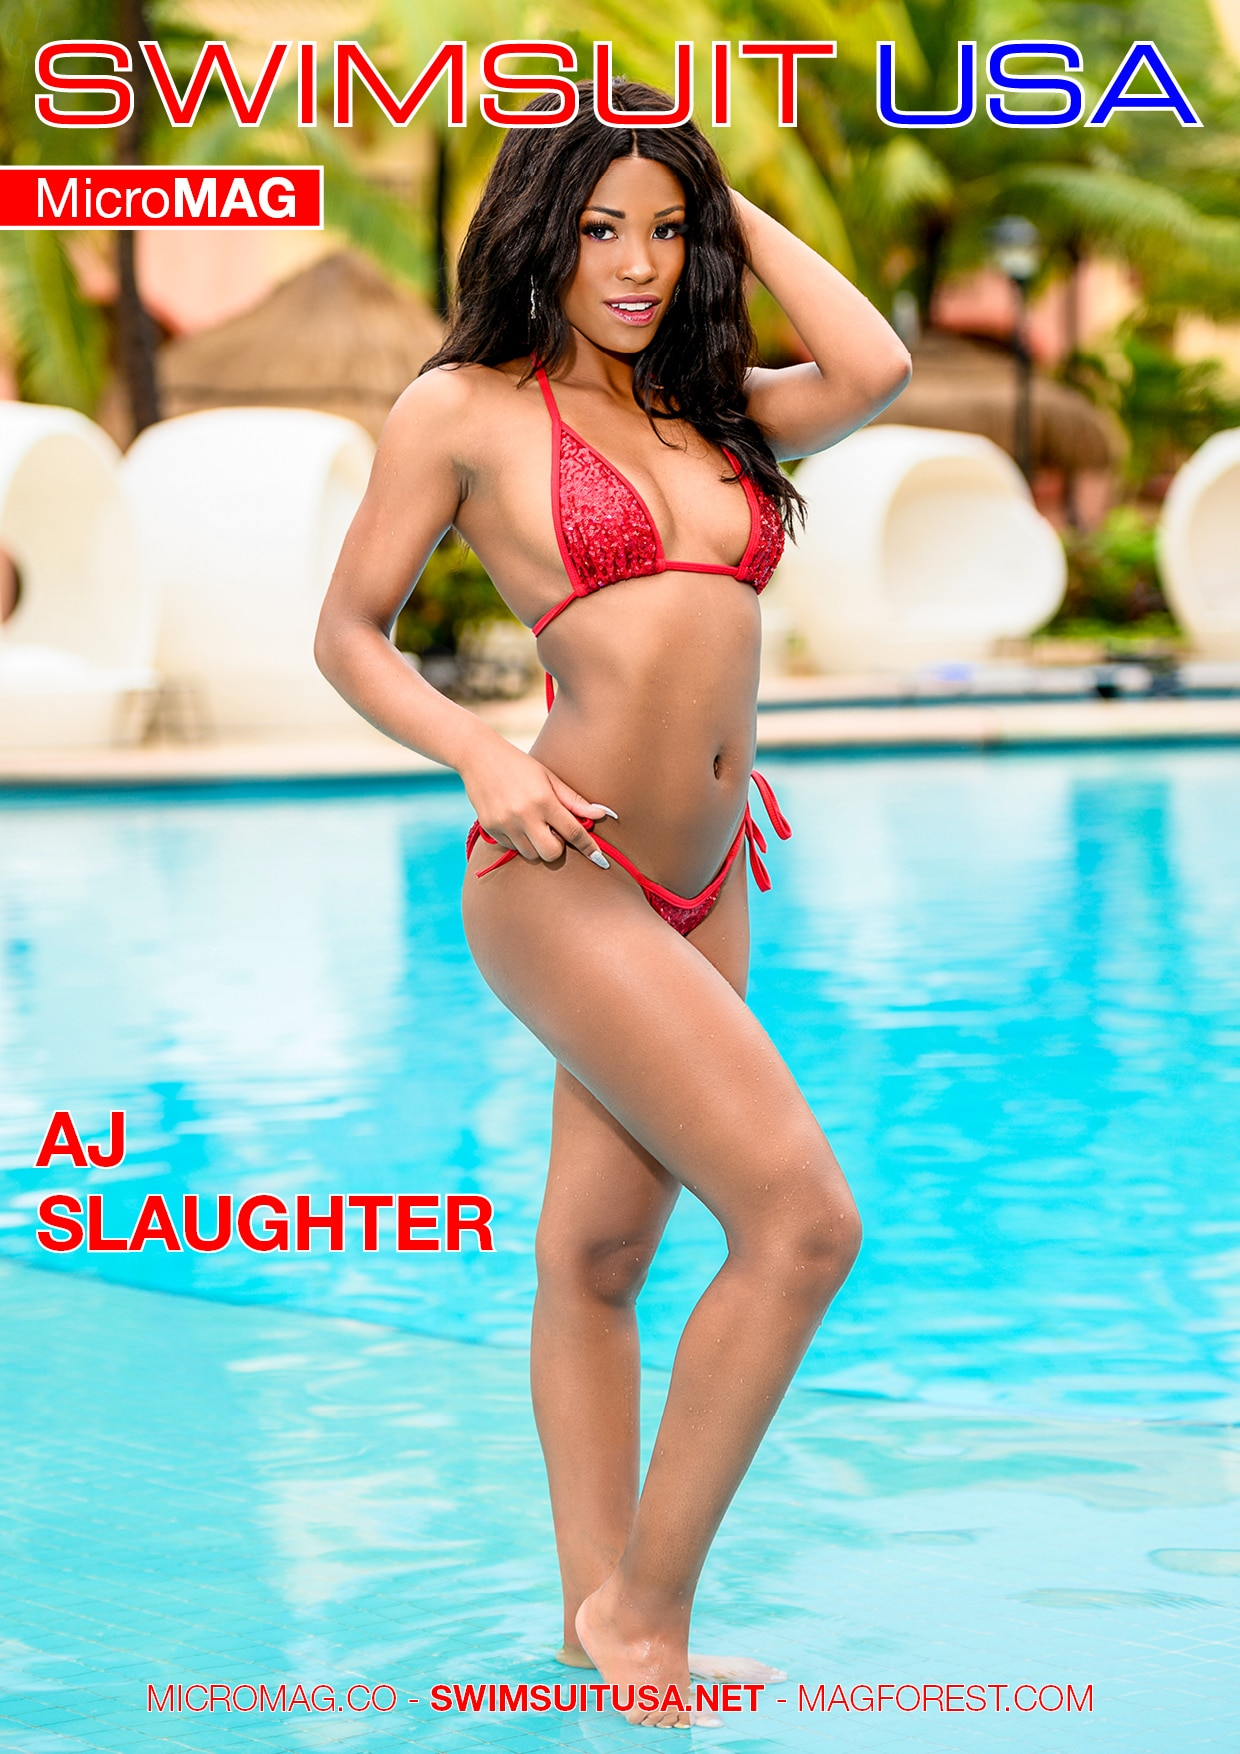 Swimsuit USA MicroMAG - AJ Slaughter - Issue 2 1